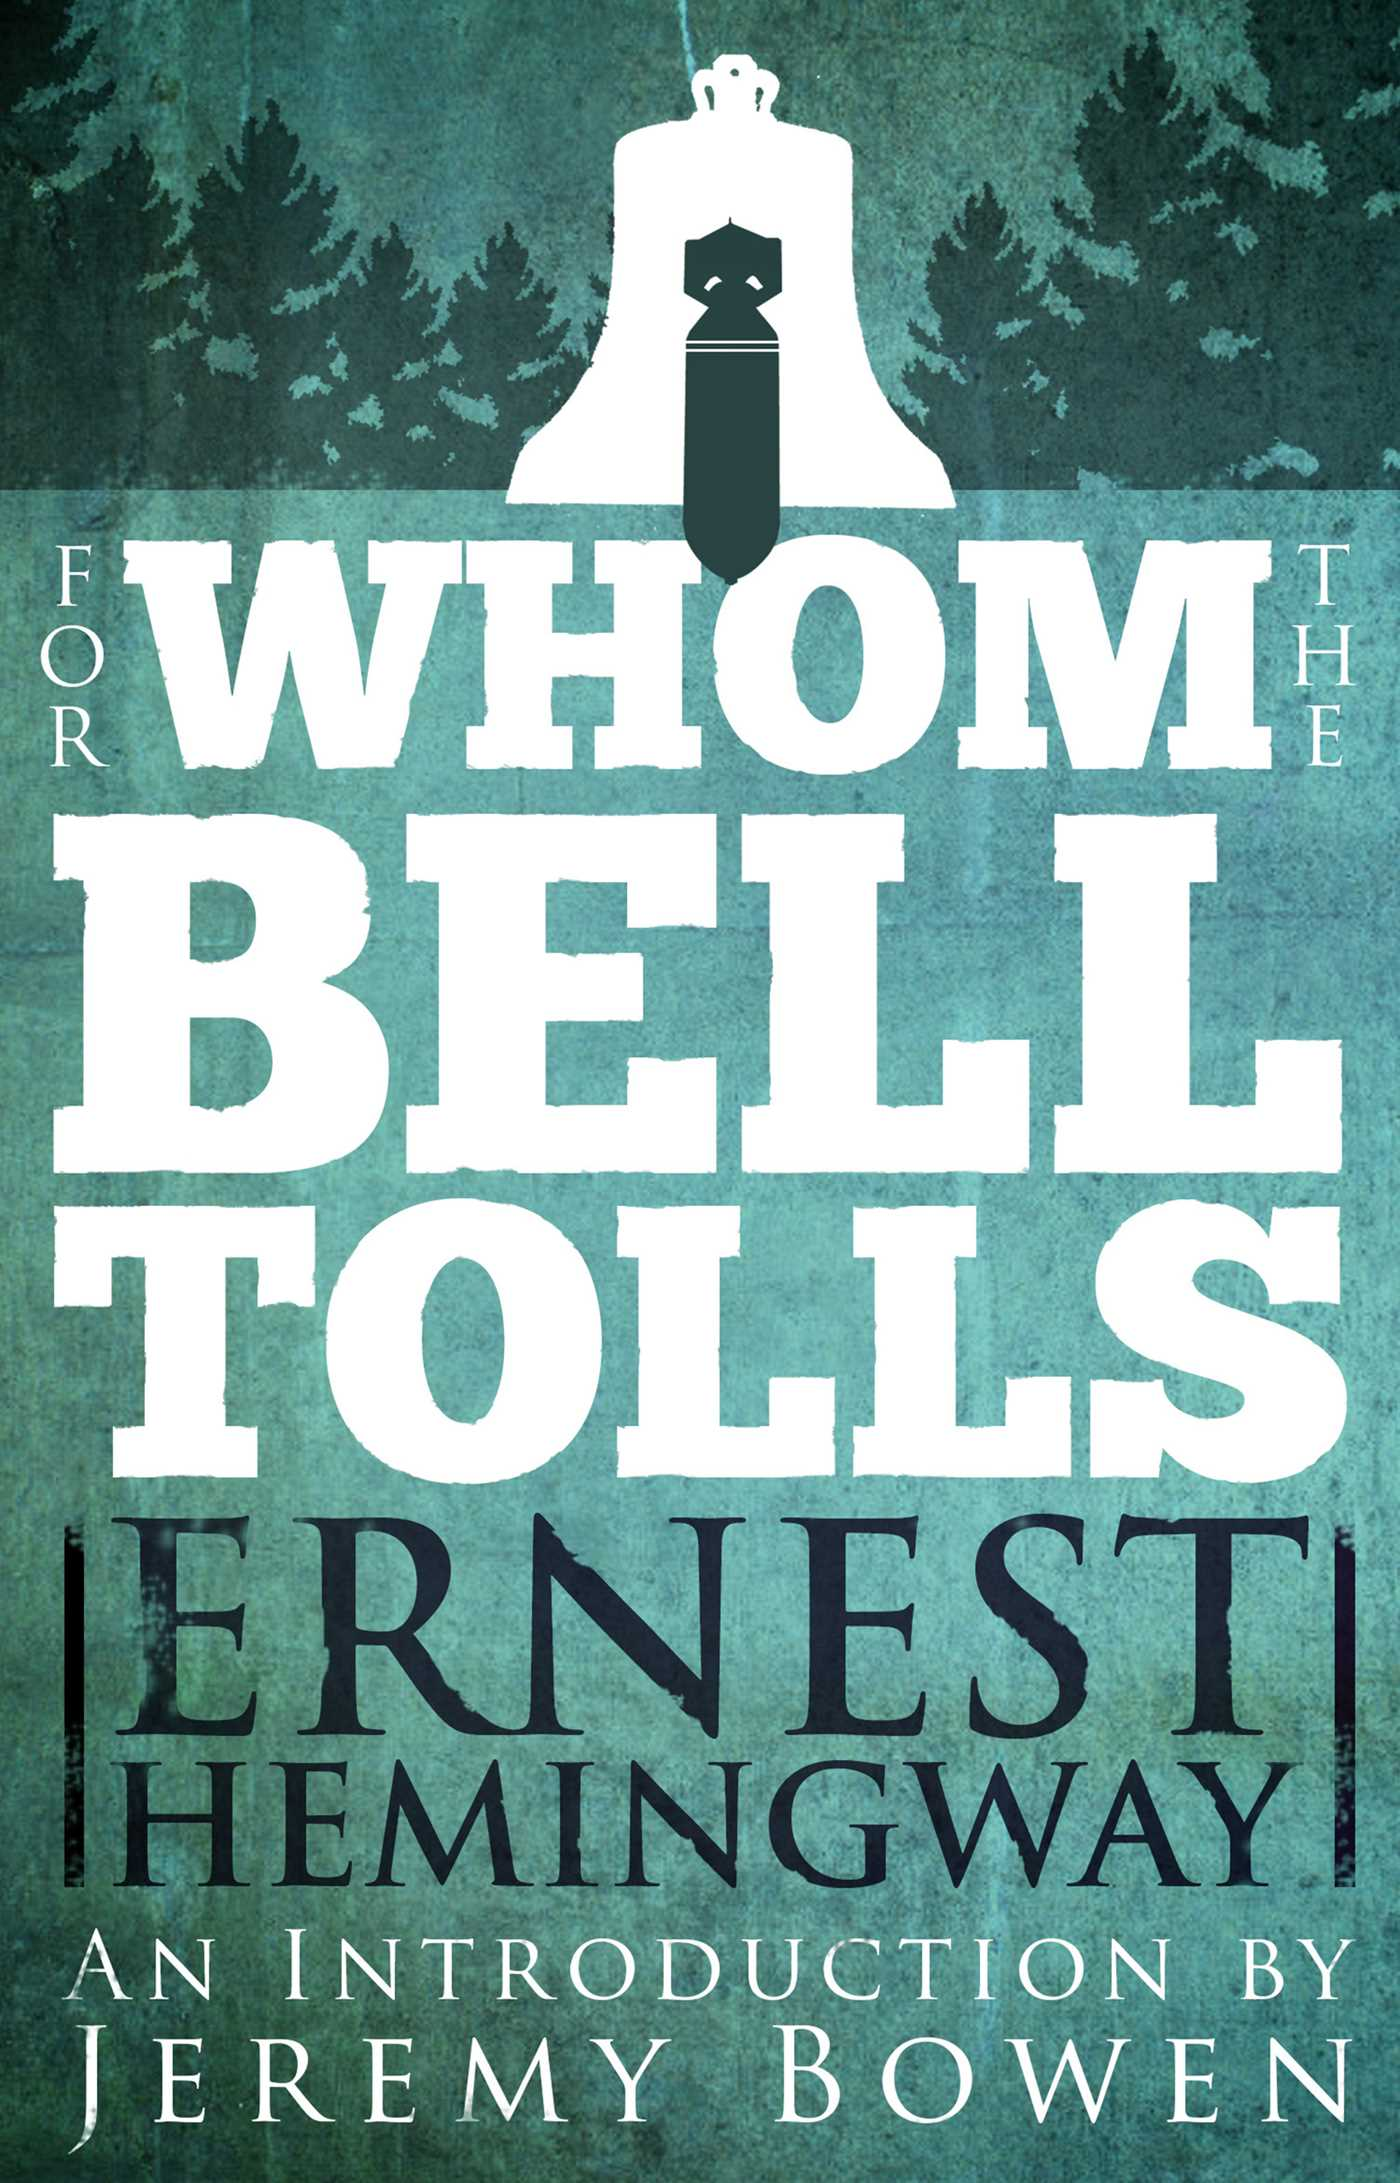 For Whom The Bell Tolls EBook By Ernest Hemingway Official